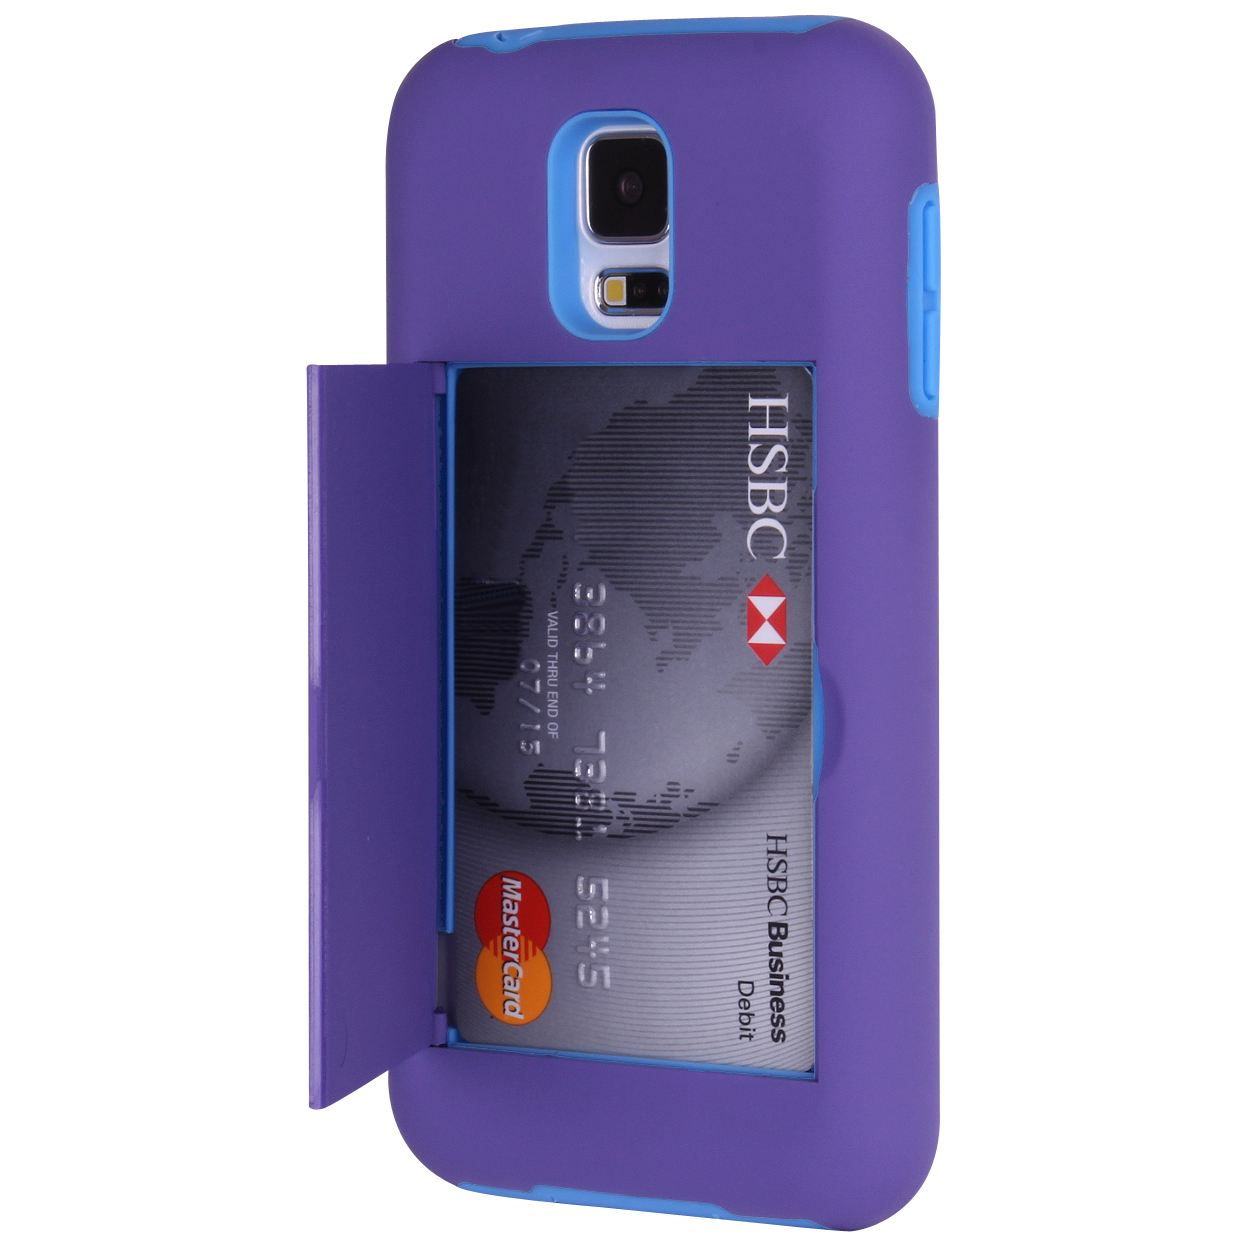 Hard/Soft Heavy Duty Hybrid Credit Card Wallet Case Cover for Samsung Galaxy S5